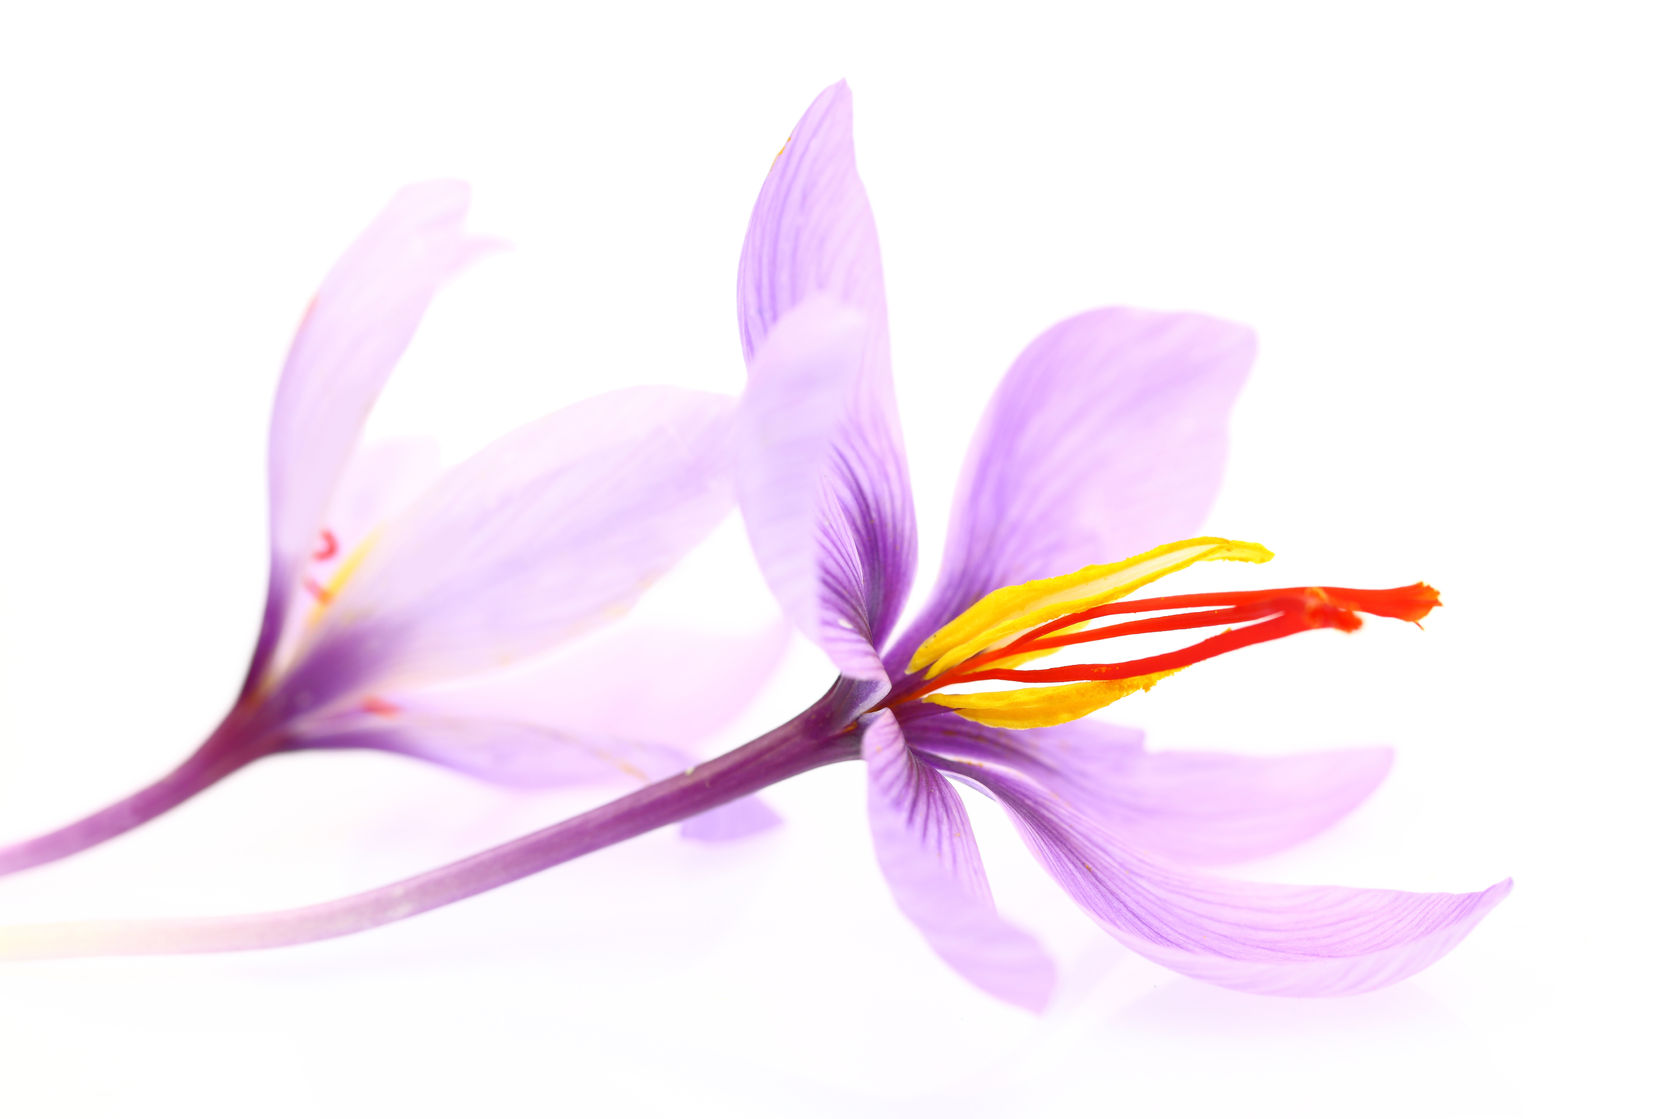 saffron suppresses appetite and improves weight loss and cholesterol